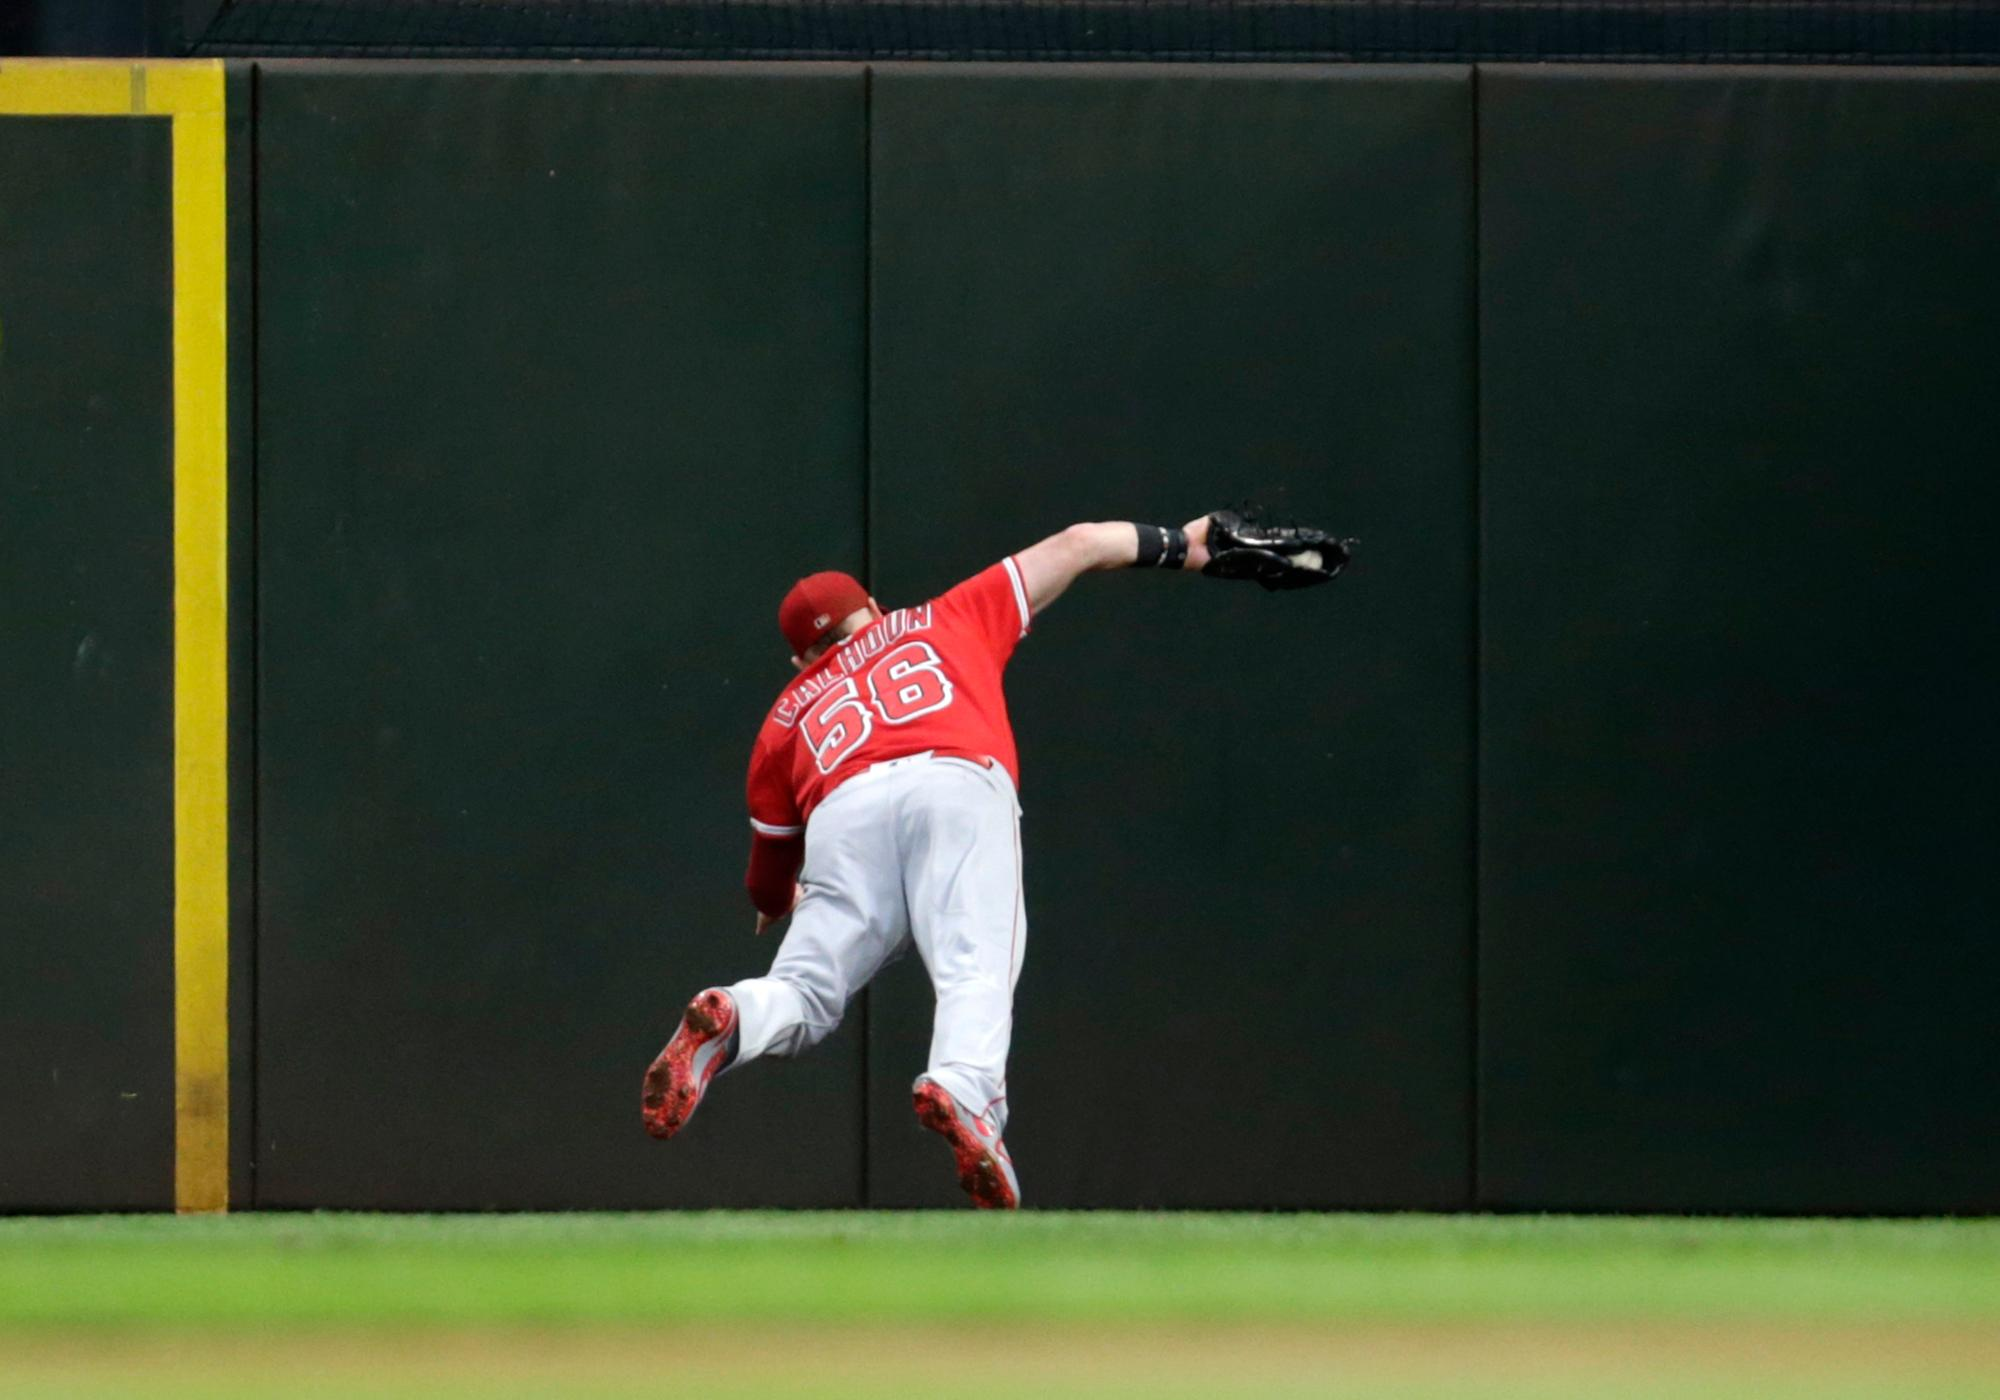 Los Angeles Angels right fielder Kole Calhoun dives for the ball but is unable to complete the catch, giving Seattle Mariners' Mitch Haniger a triple during the third inning of a baseball game Saturday, Sept. 9, 2017, in Seattle. Haniger scored in the inning. (AP Photo/John Froschauer)